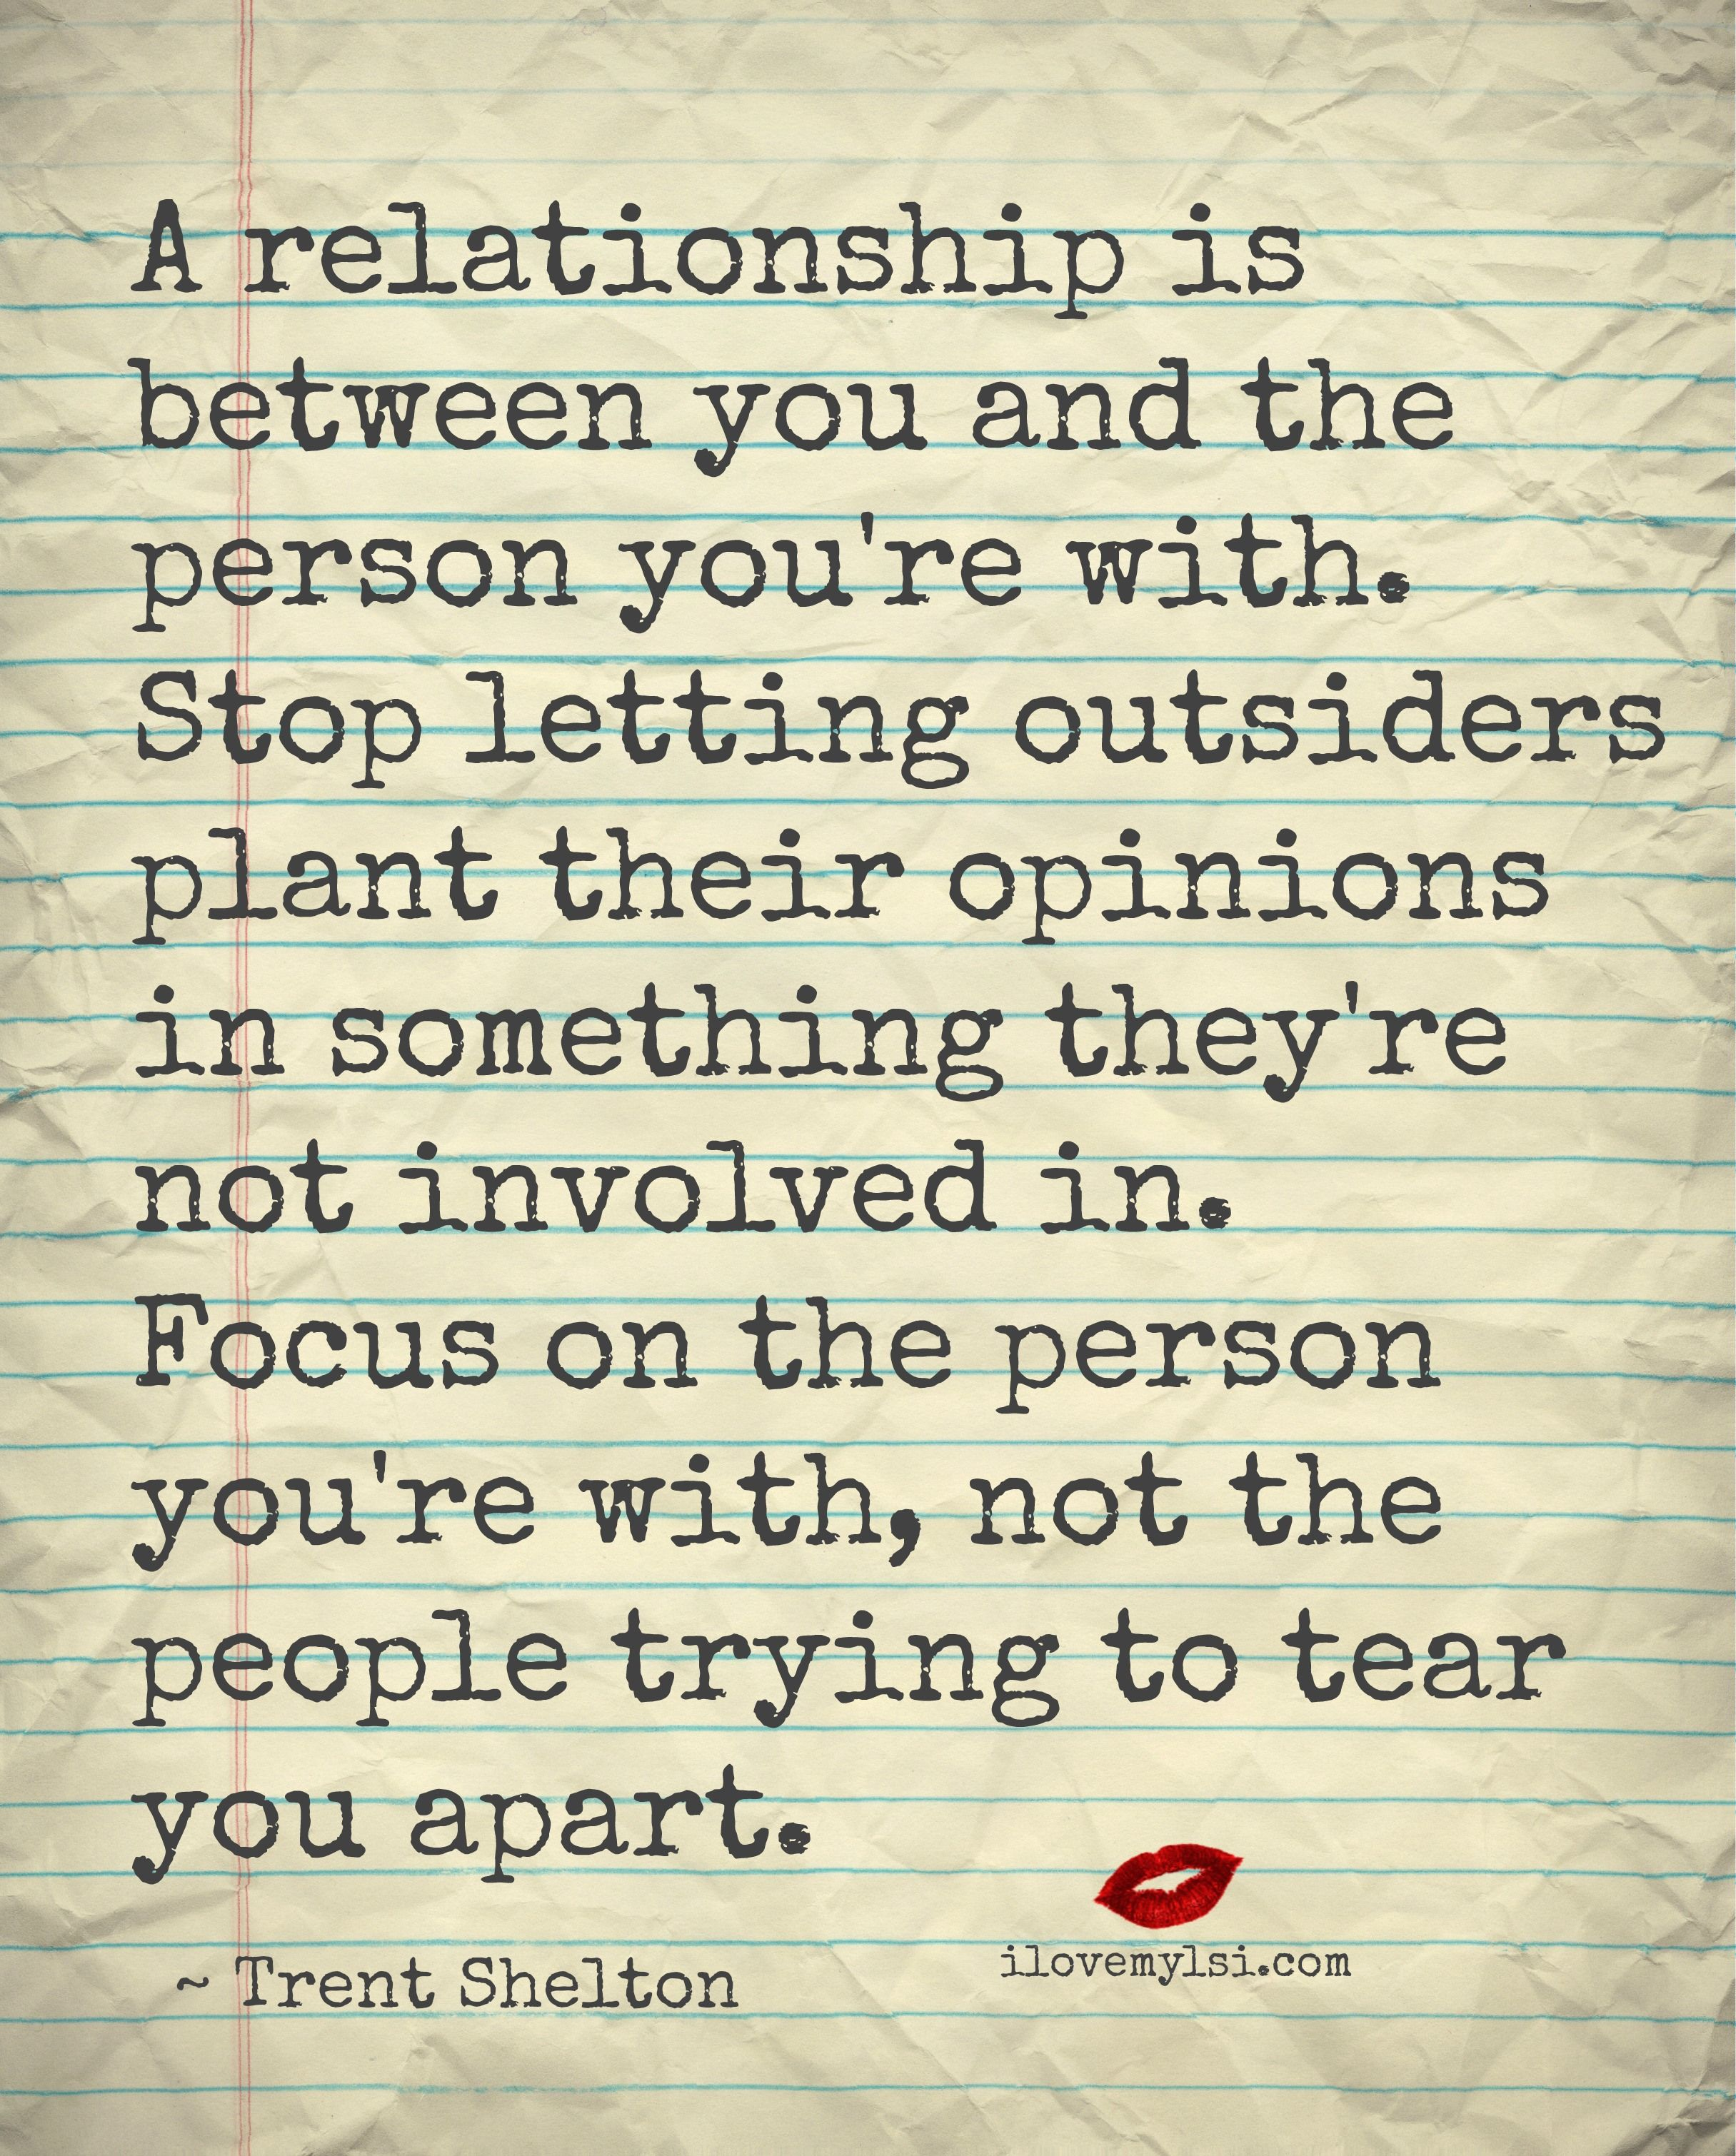 Stop Interfering In Others Life Quotes : interfering, others, quotes, Focus, Person, You're, Relationship, Quotes,, Quotes